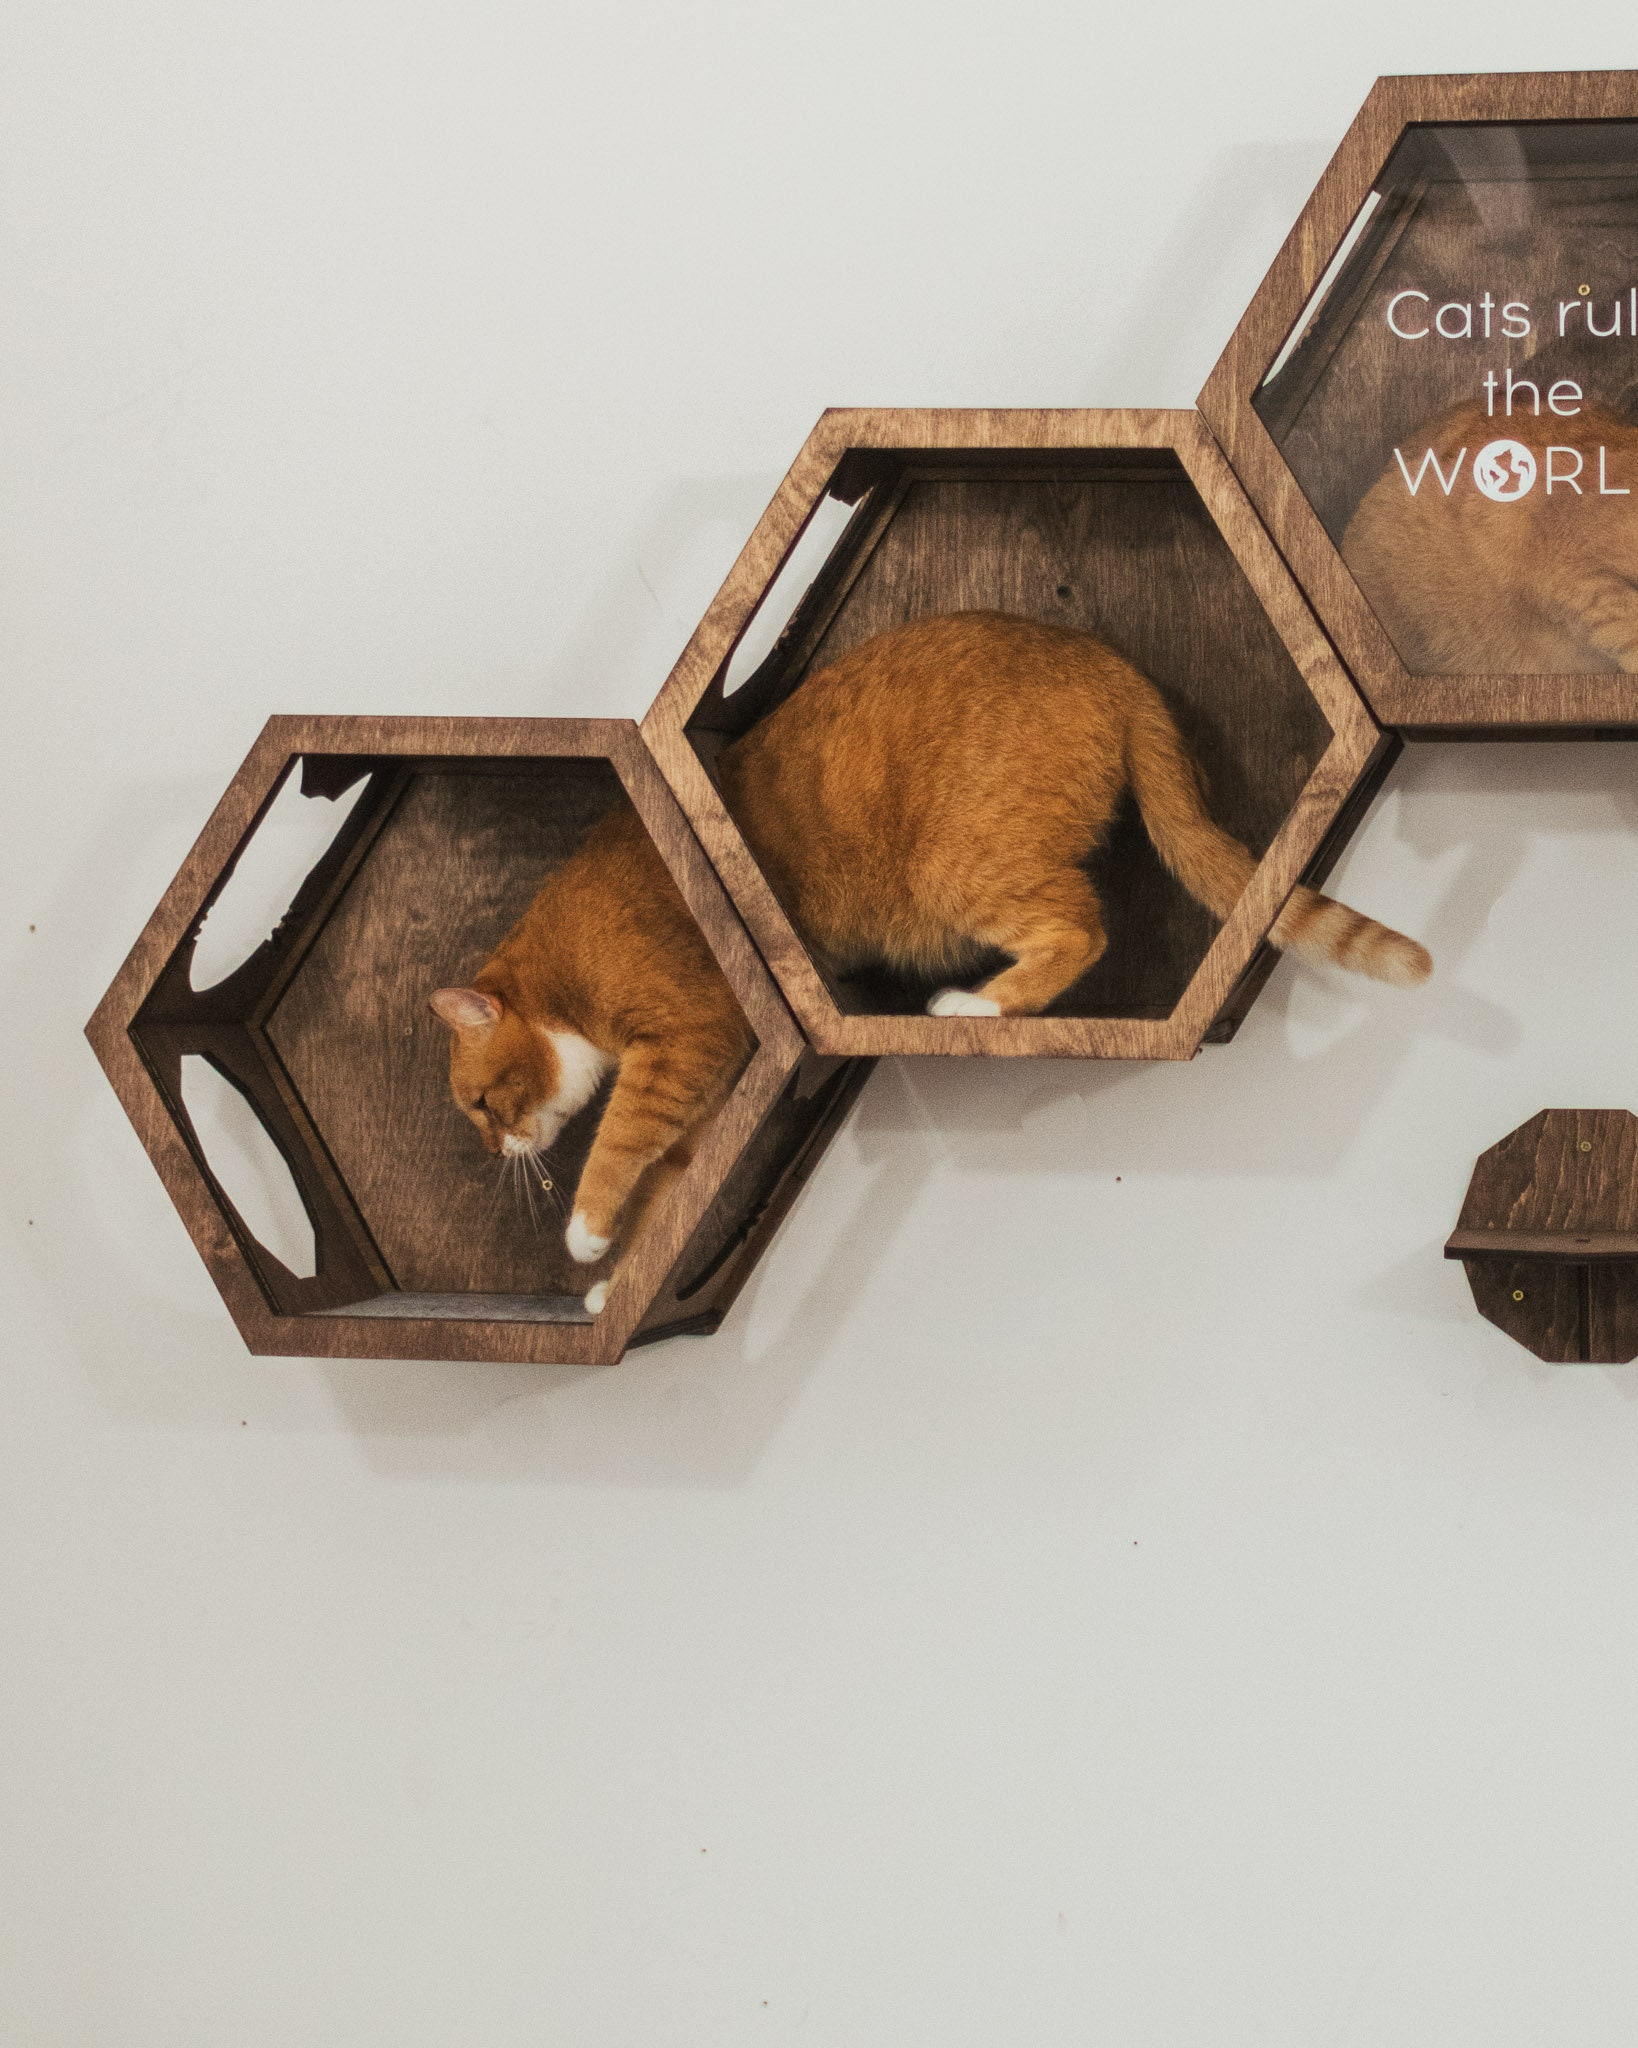 Cat Wall Furniture, Cat Hexagon Shelf, Cat Lover Gift, Cat Toys, Cat Shelves, Gift for Cat, Cat Furniture by Catsmode